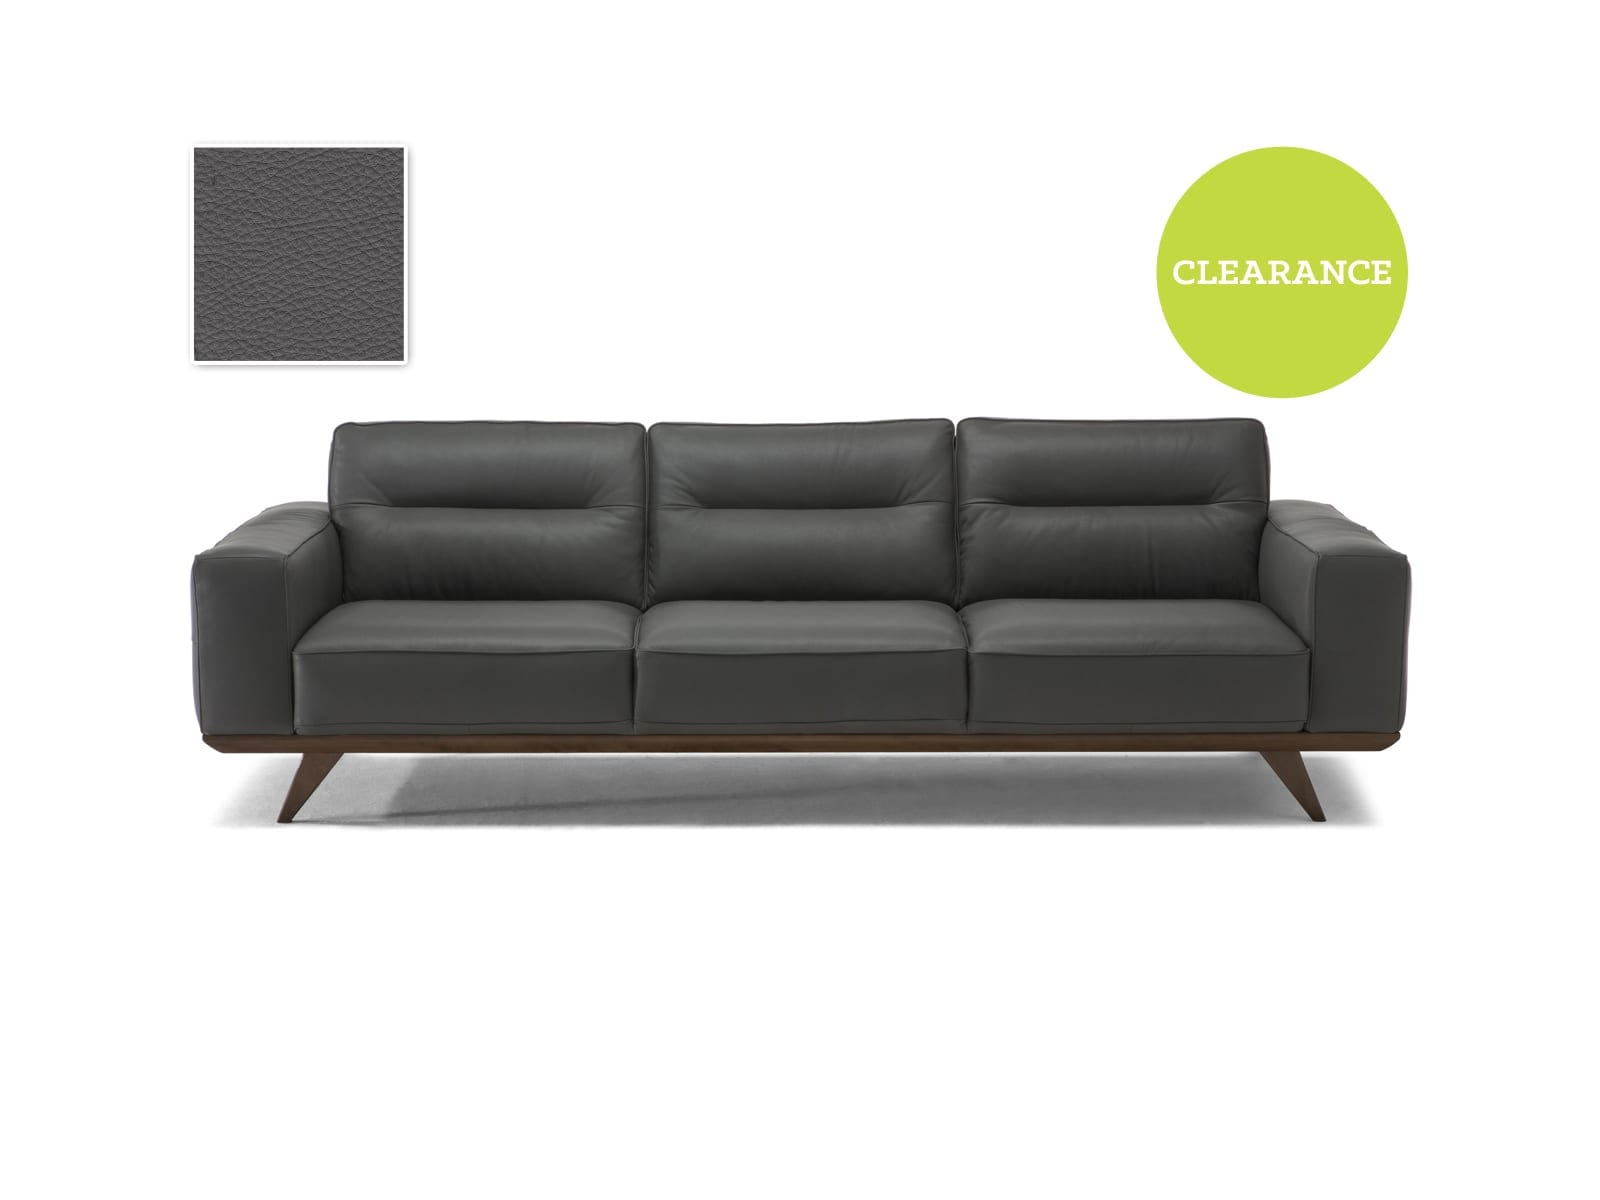 Editions C006 Achille 064 Large Sofa 25TD Leather 227838